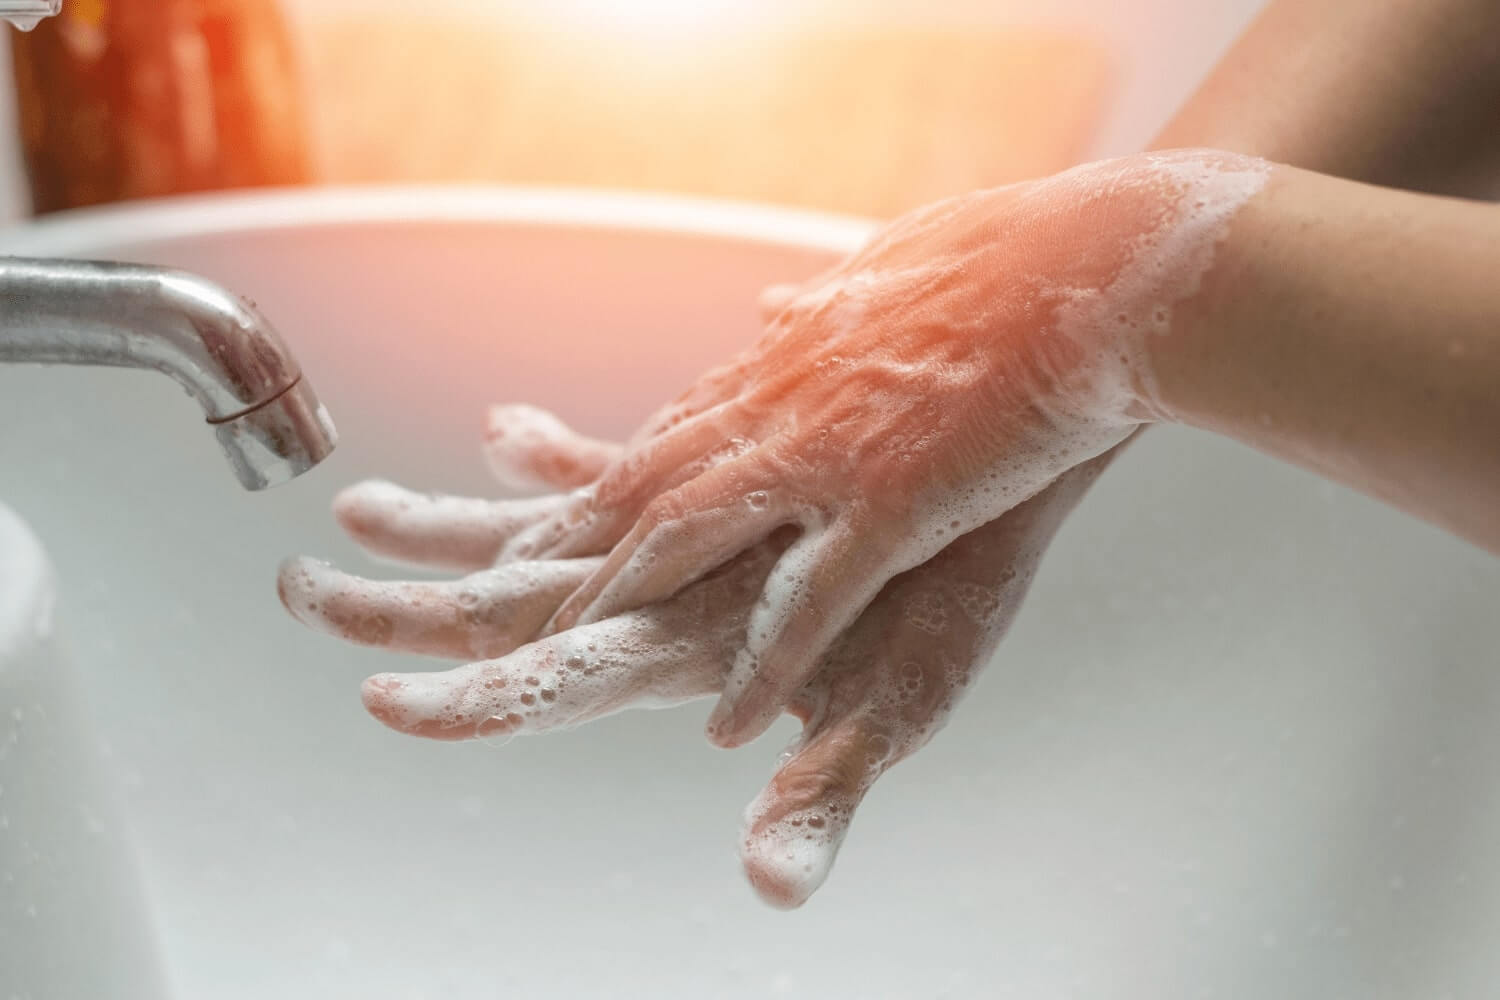 Experts suggest hand washing and distancing could be regularly used to slow spread of lung infections - Preview Image